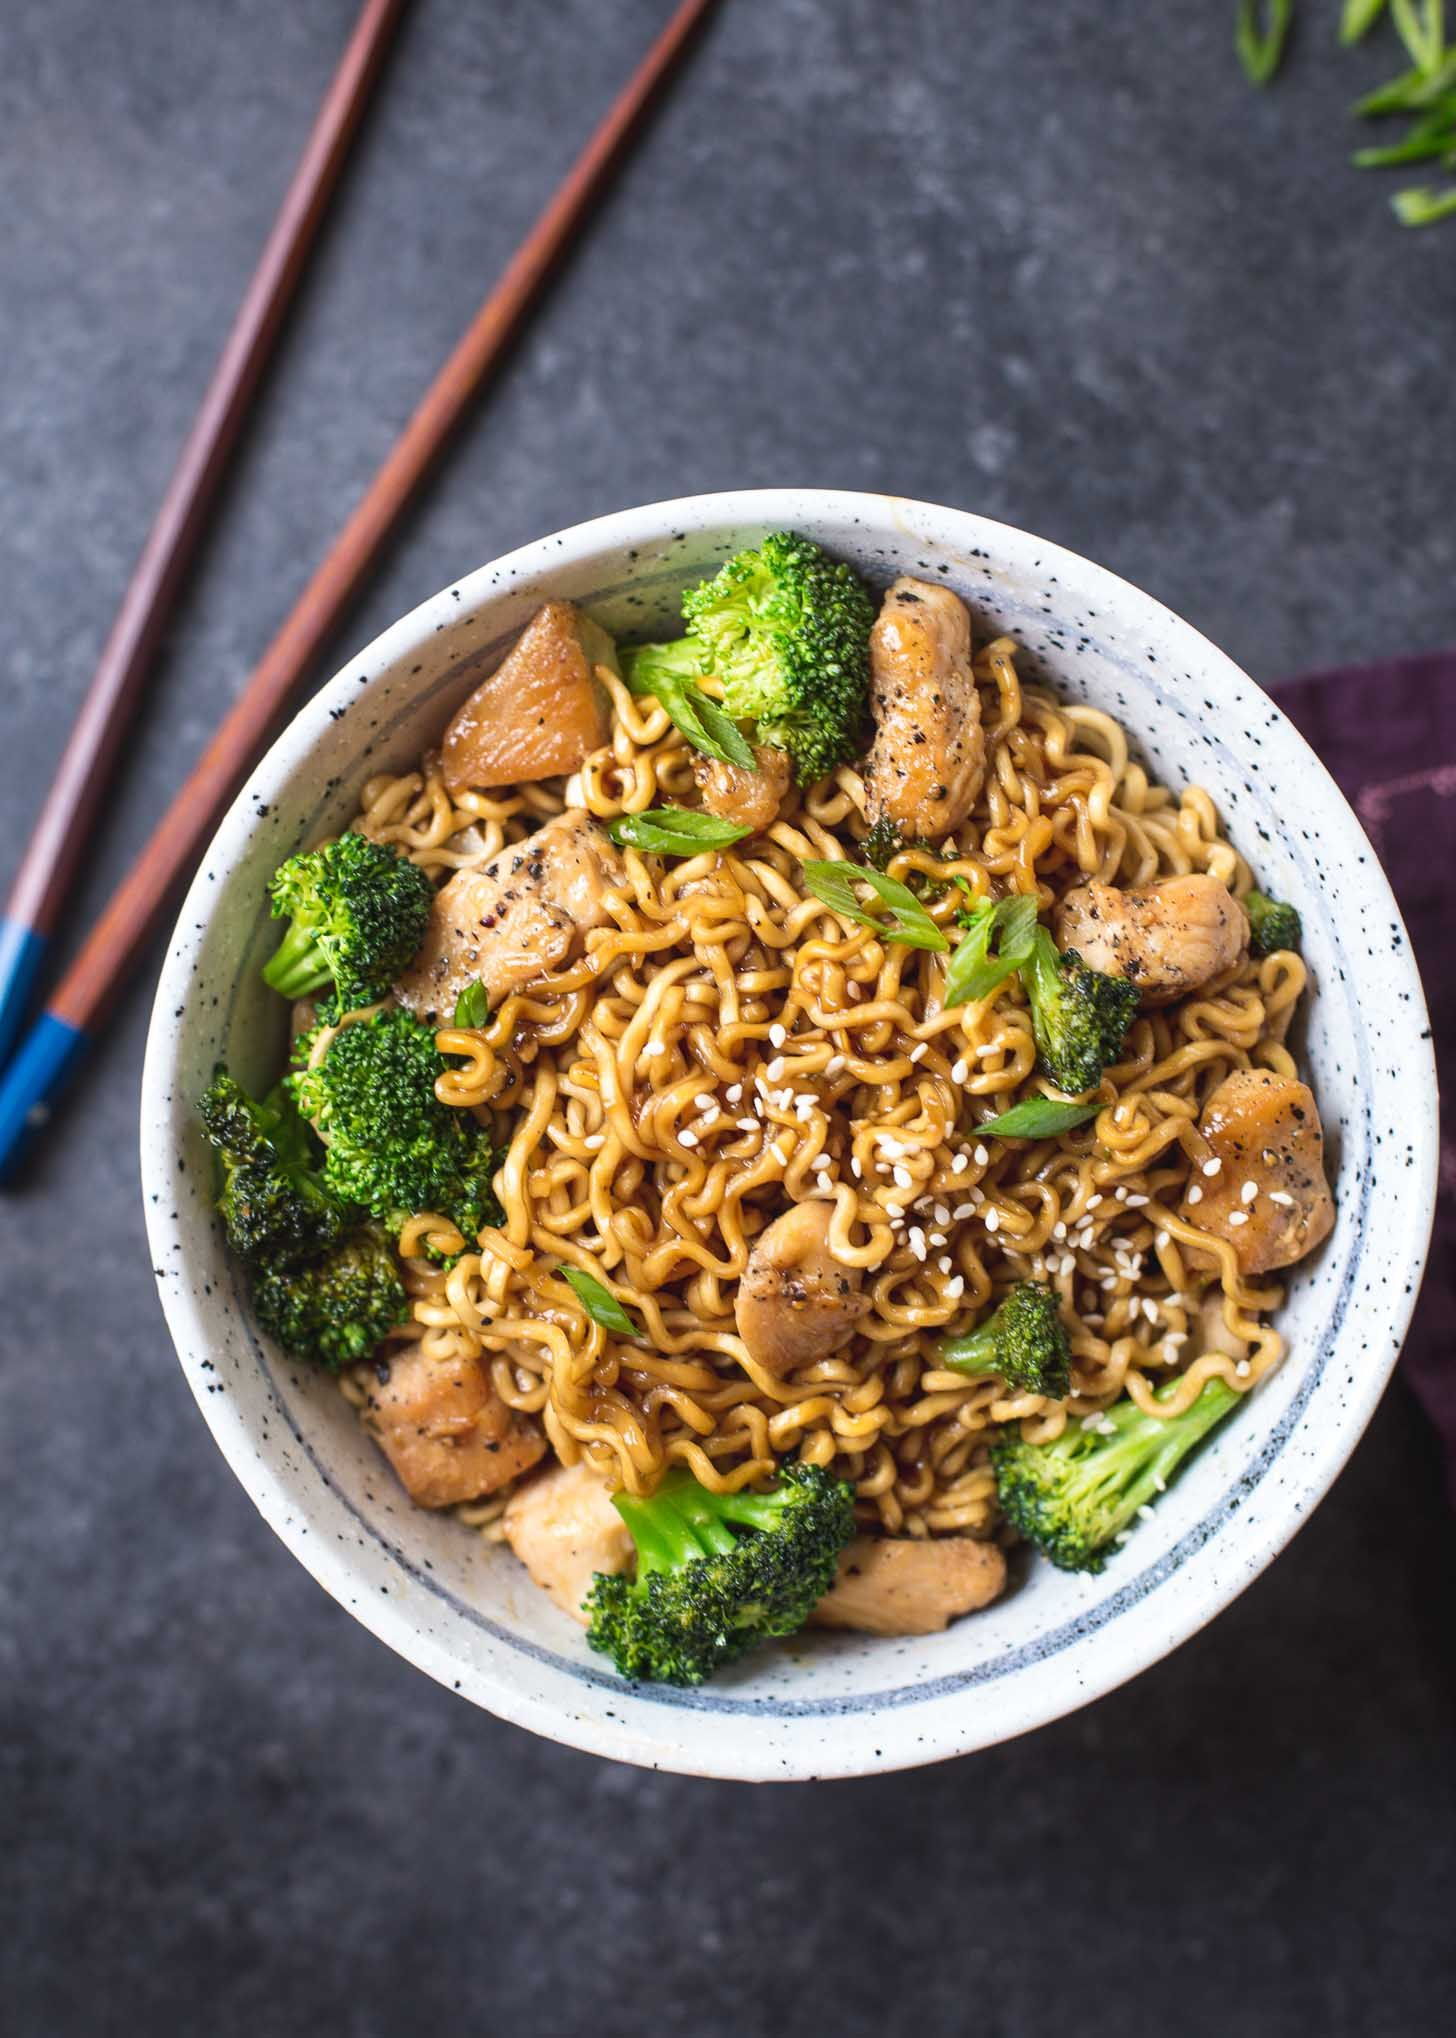 Discussion on this topic: Tofu and Peanut Stir-Fry with Ramen Noodles , tofu-and-peanut-stir-fry-with-ramen-noodles/